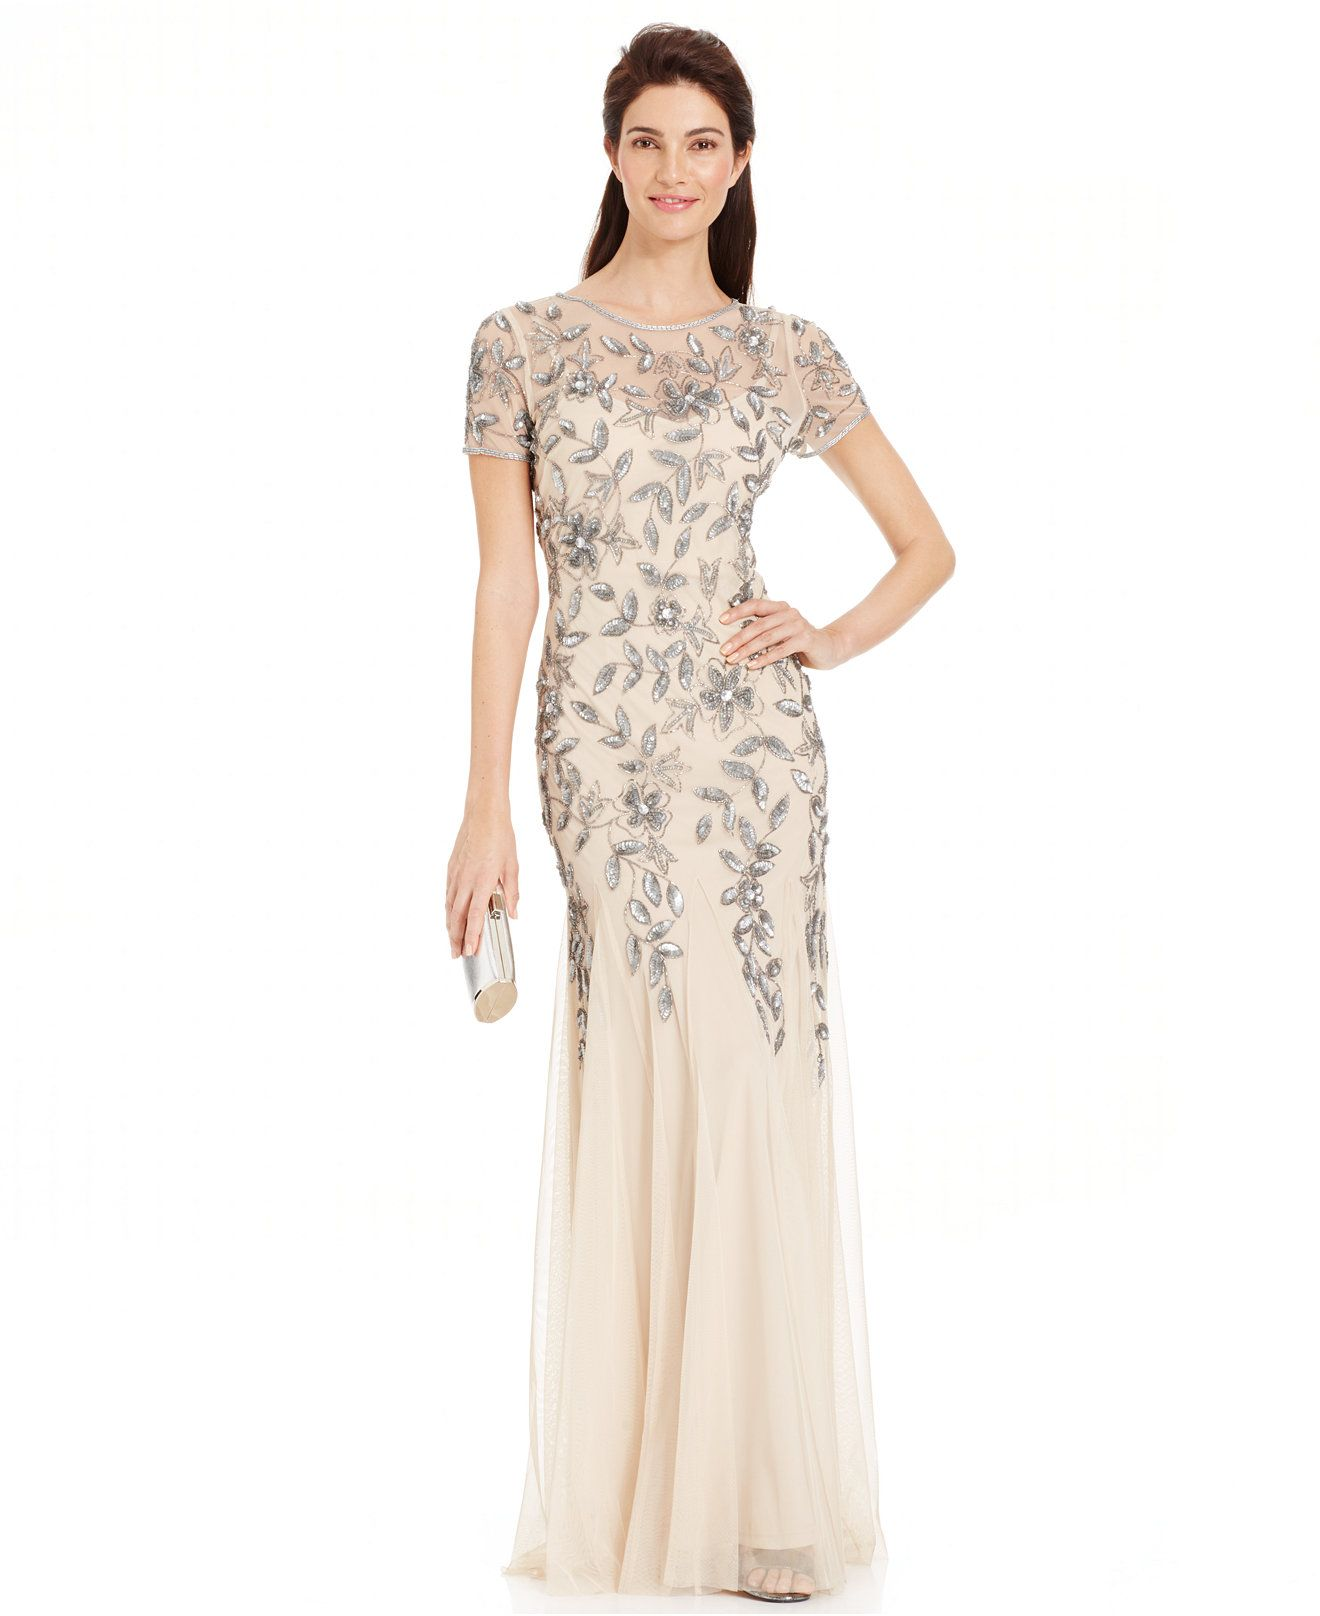 83359c723ec Adrianna Papell Embellished Floral-Print Gown - Dresses - Women - Macy s